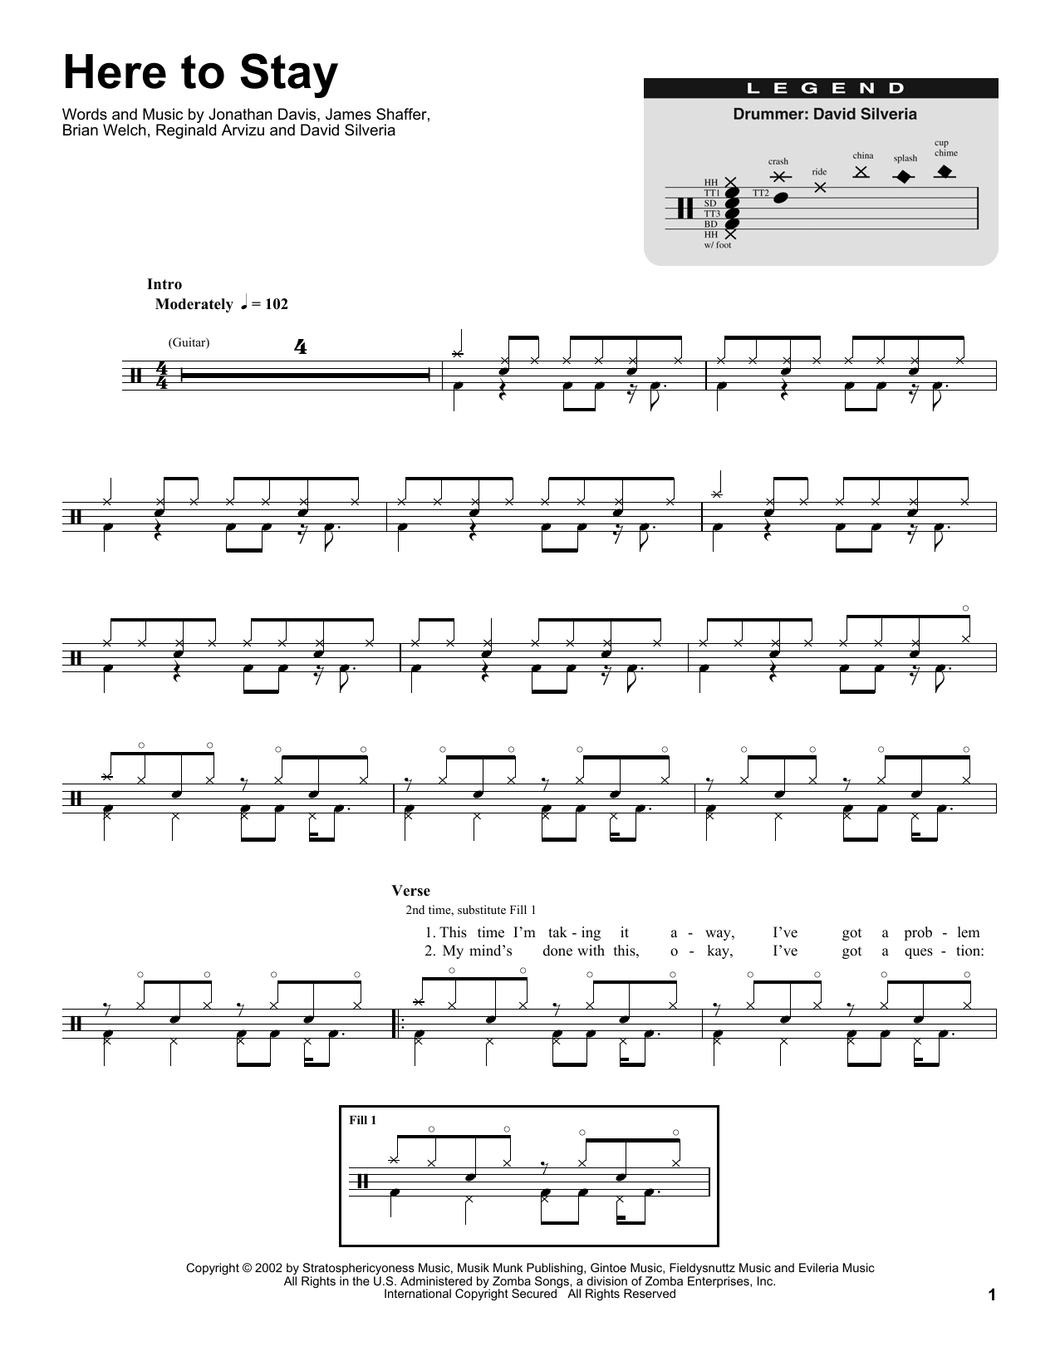 Here To Stay - Korn - Full Drum Transcription / Drum Sheet Music - SheetMusicDirect DT